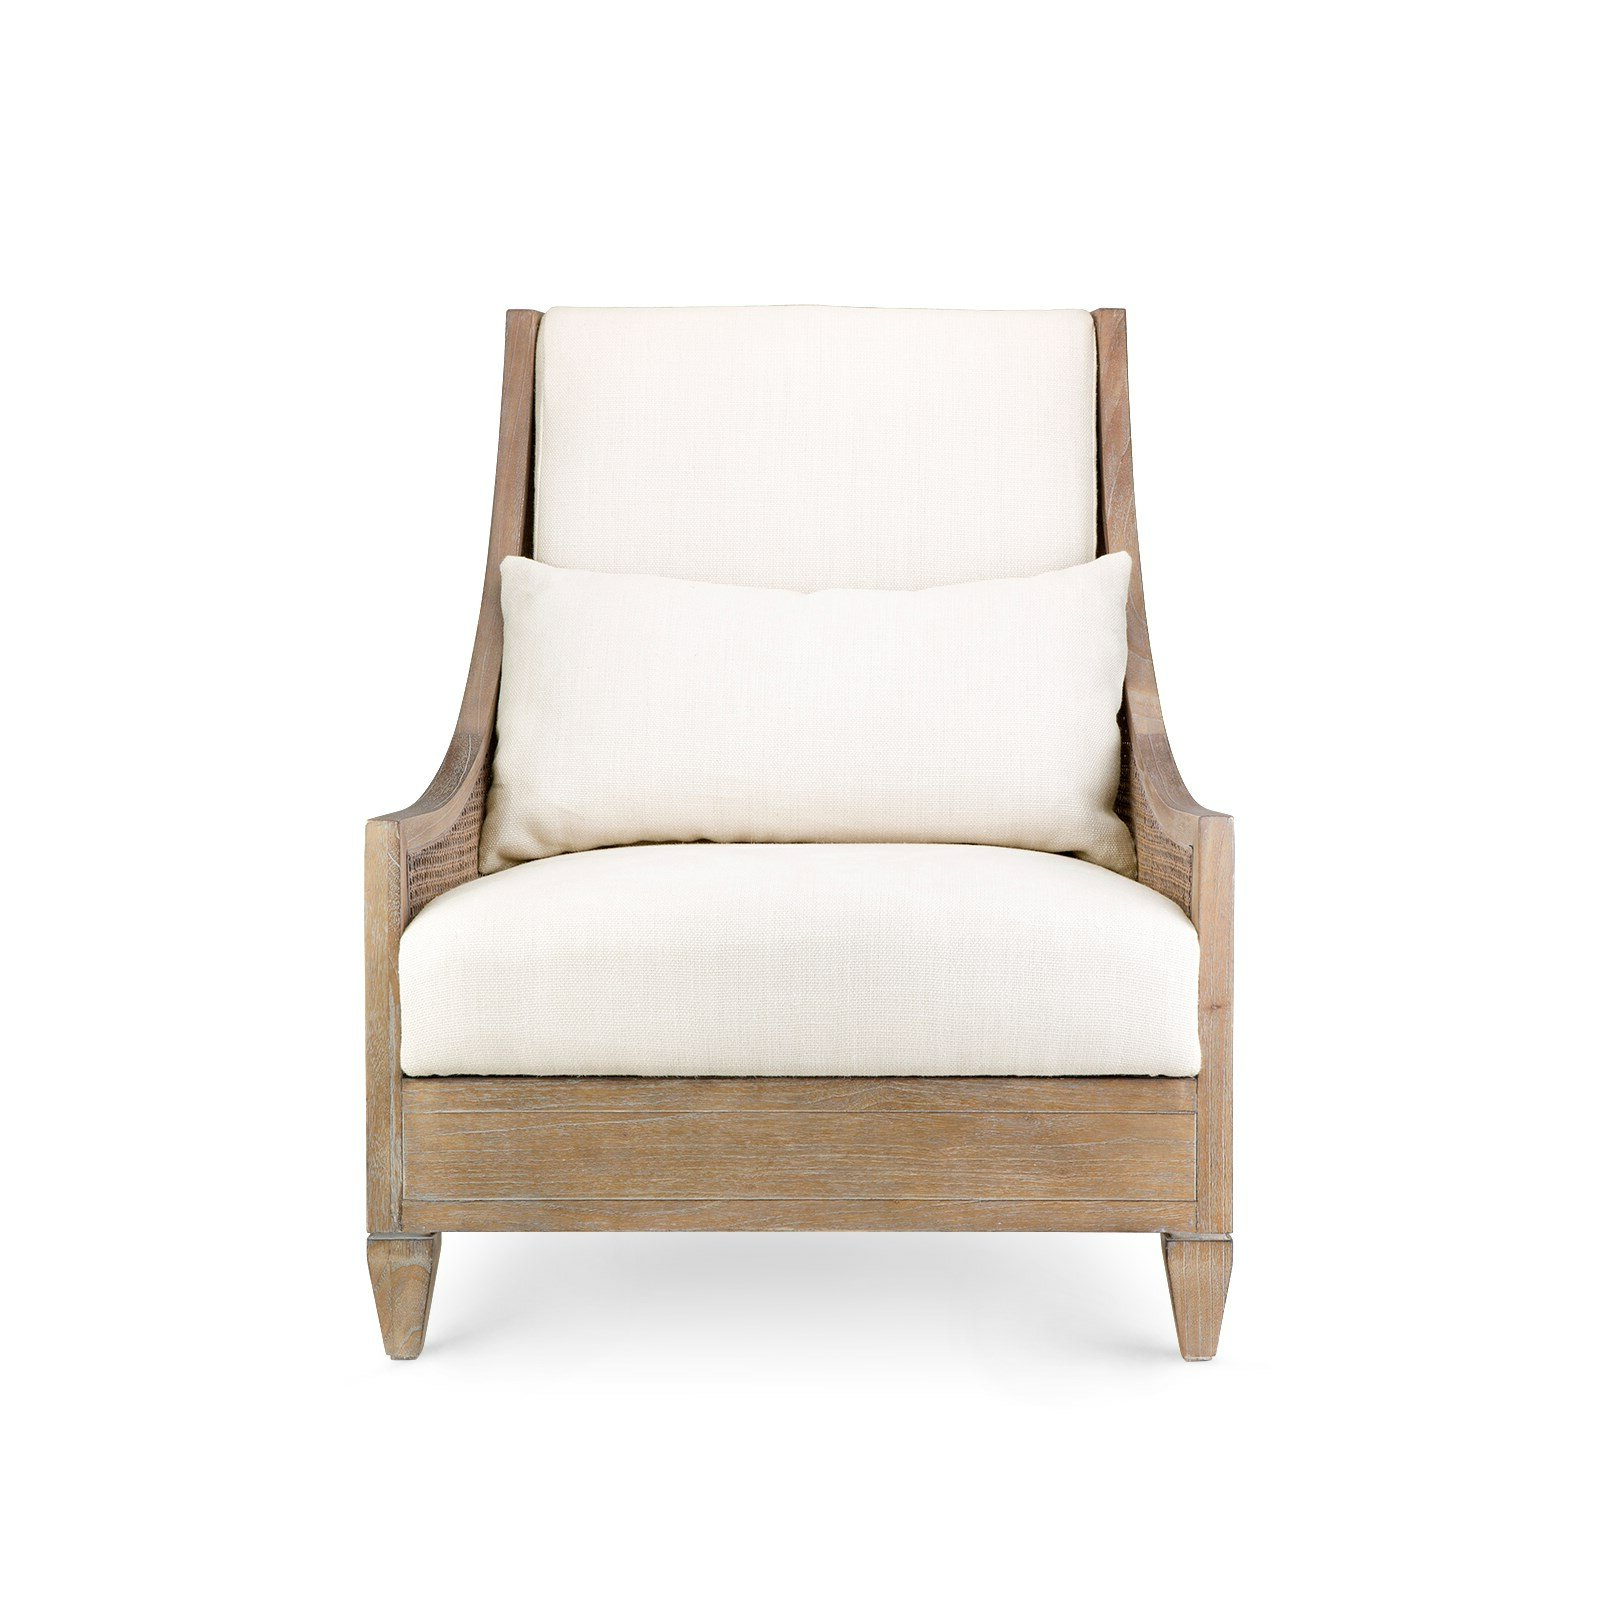 Widely Used Raleigh Armchair For Haleigh Armchairs (View 5 of 20)